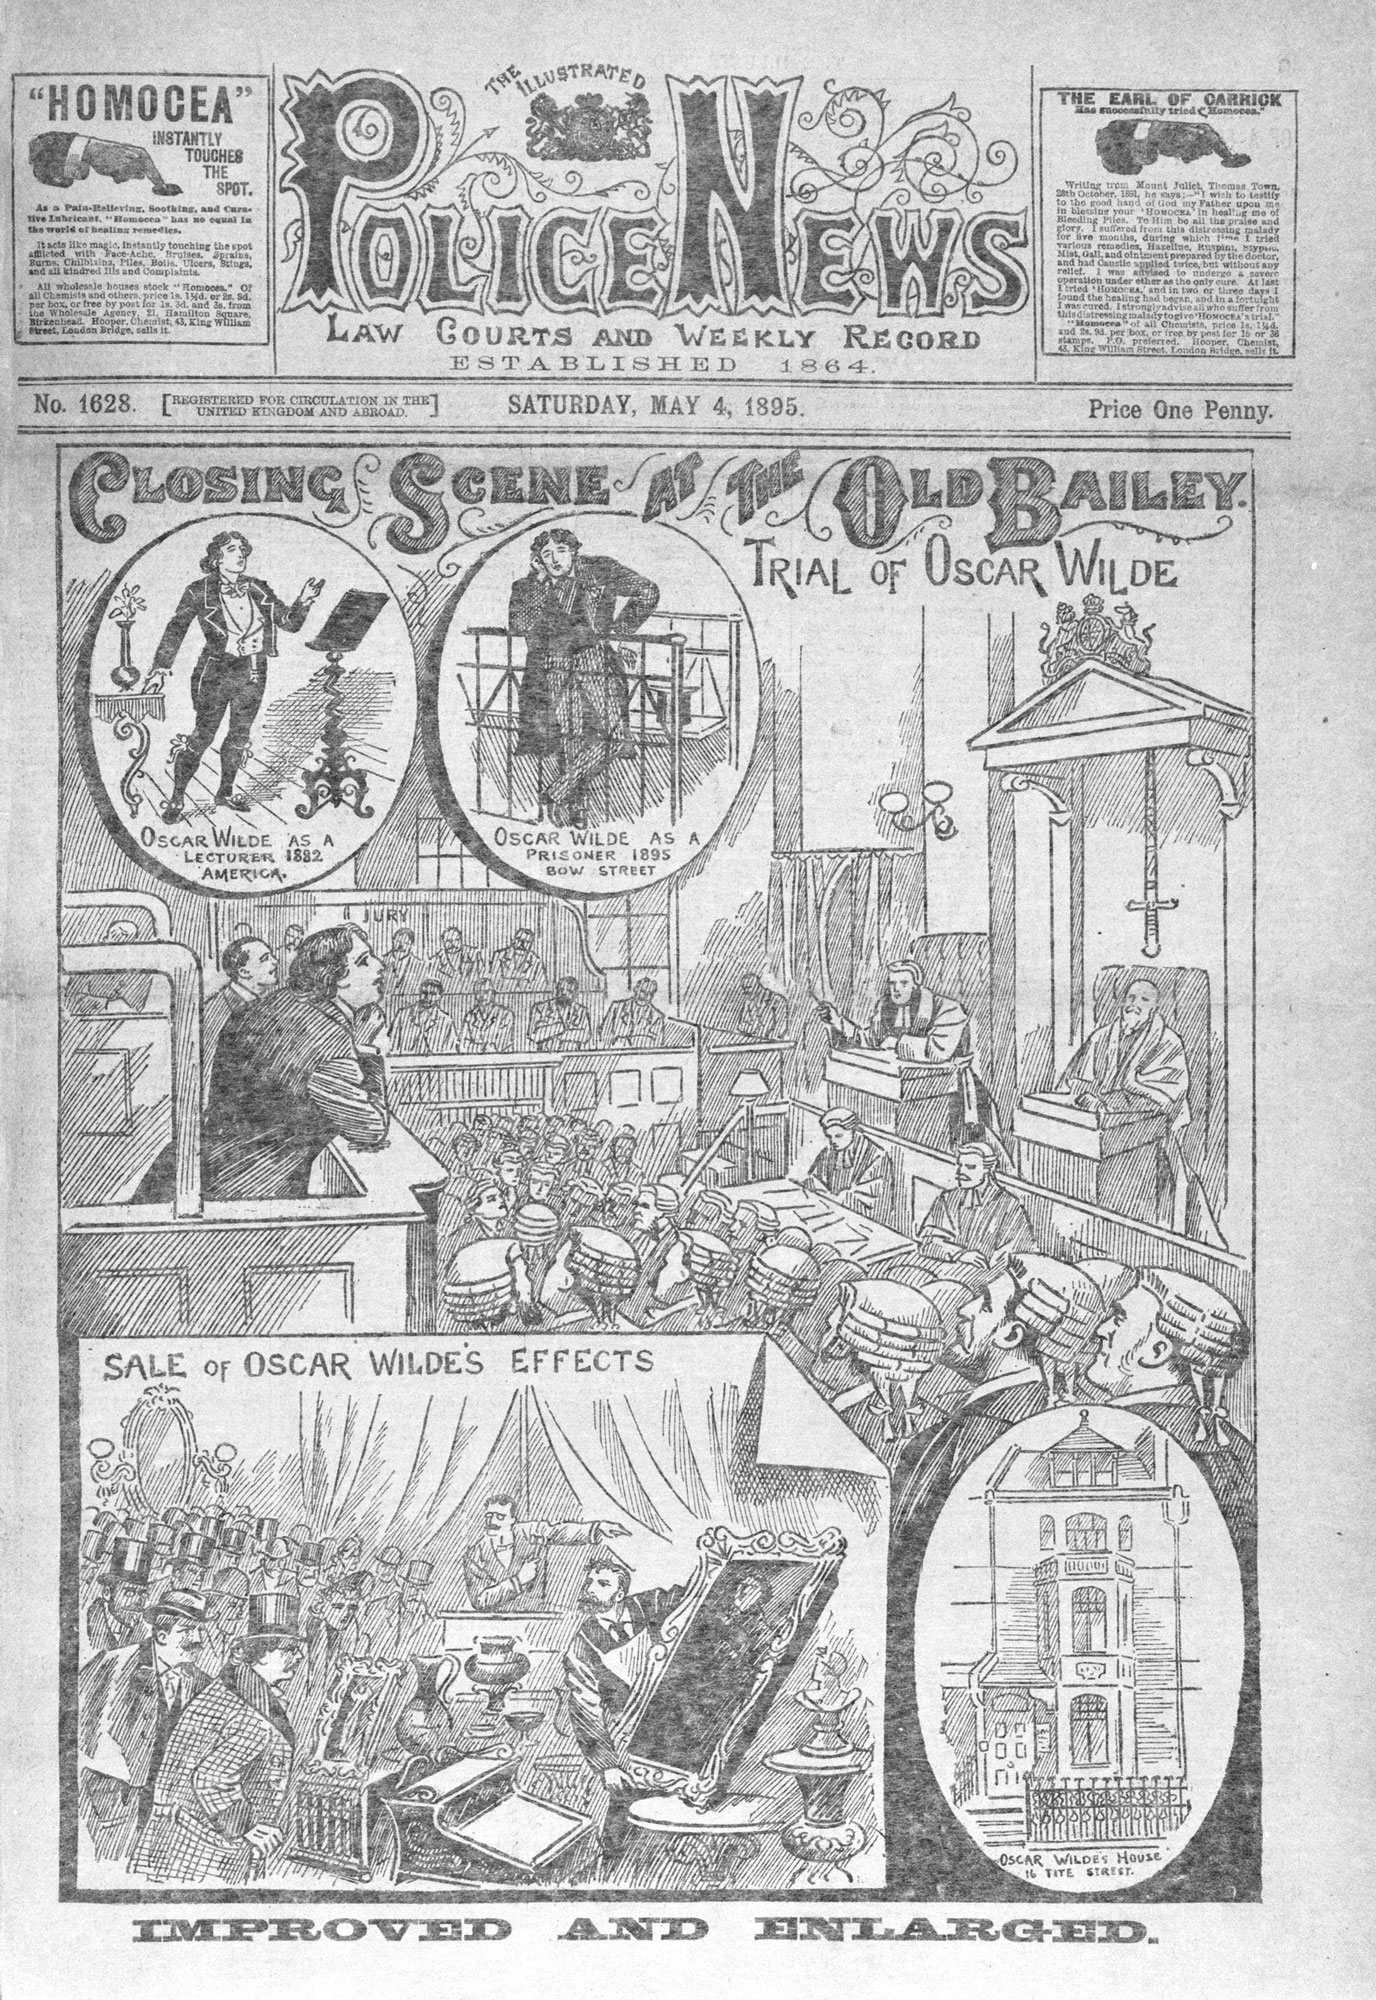 Coverage of Oscar Wilde trial